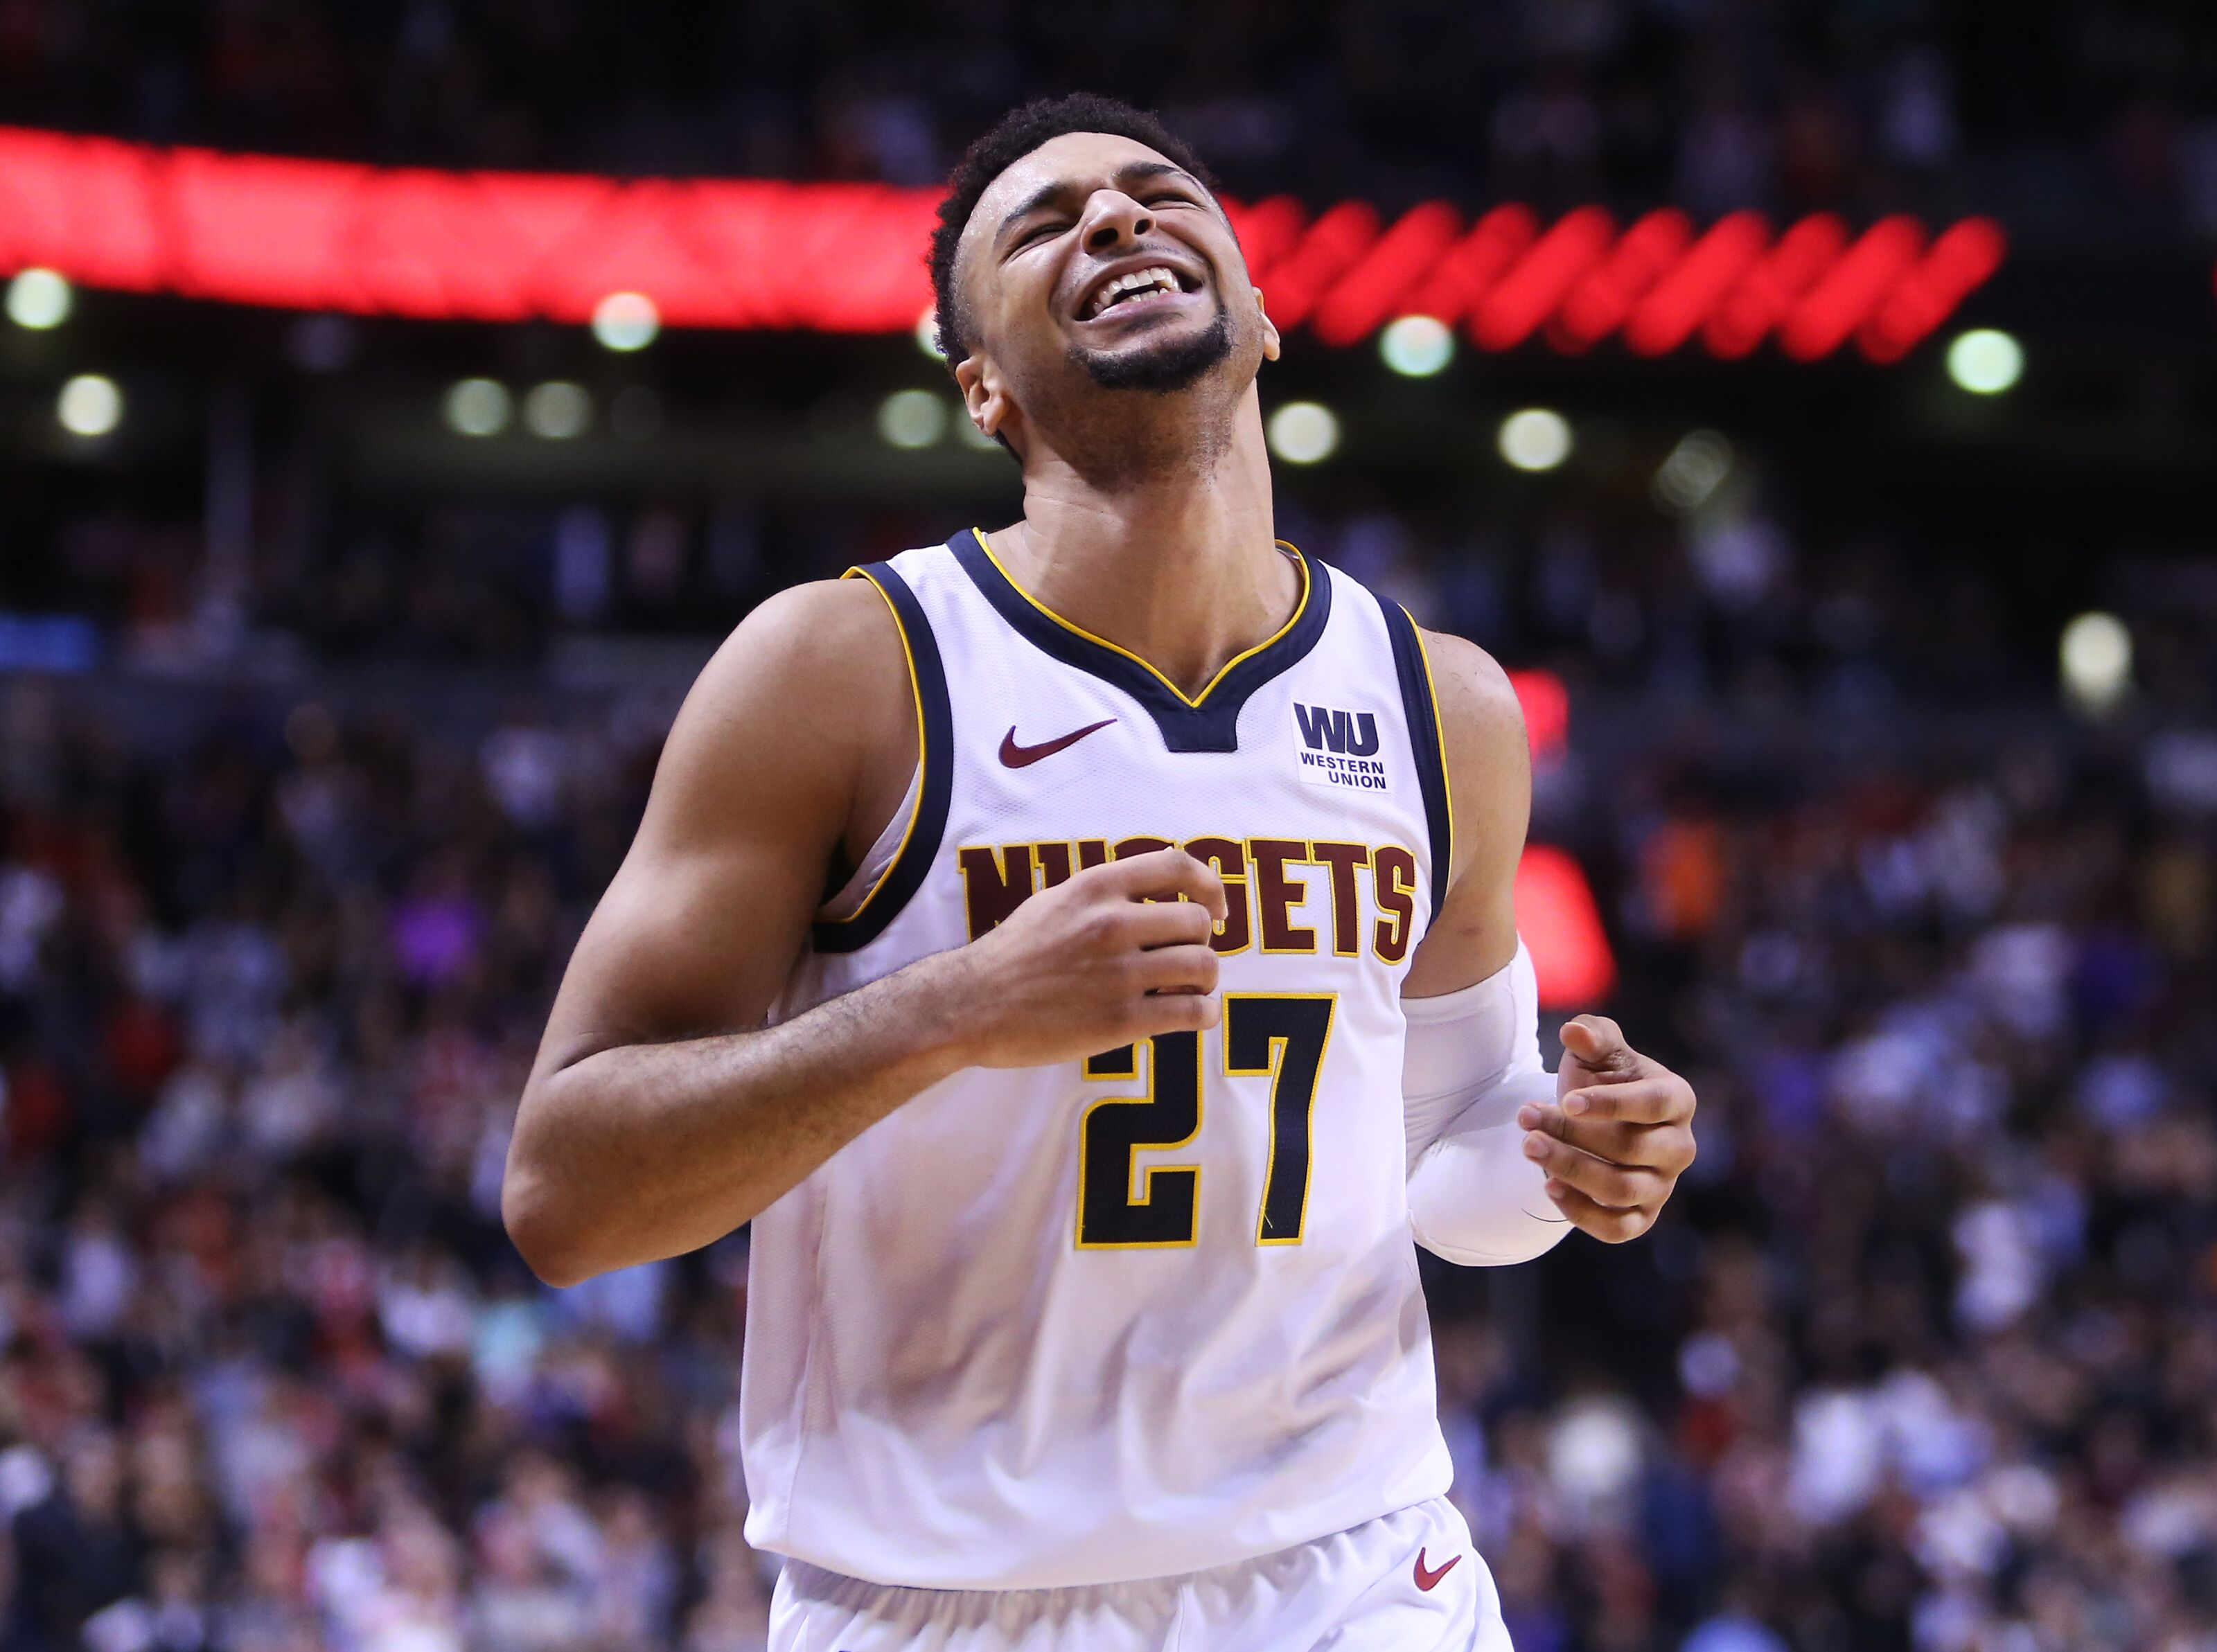 Denver Nuggets will have to get wins any way they can